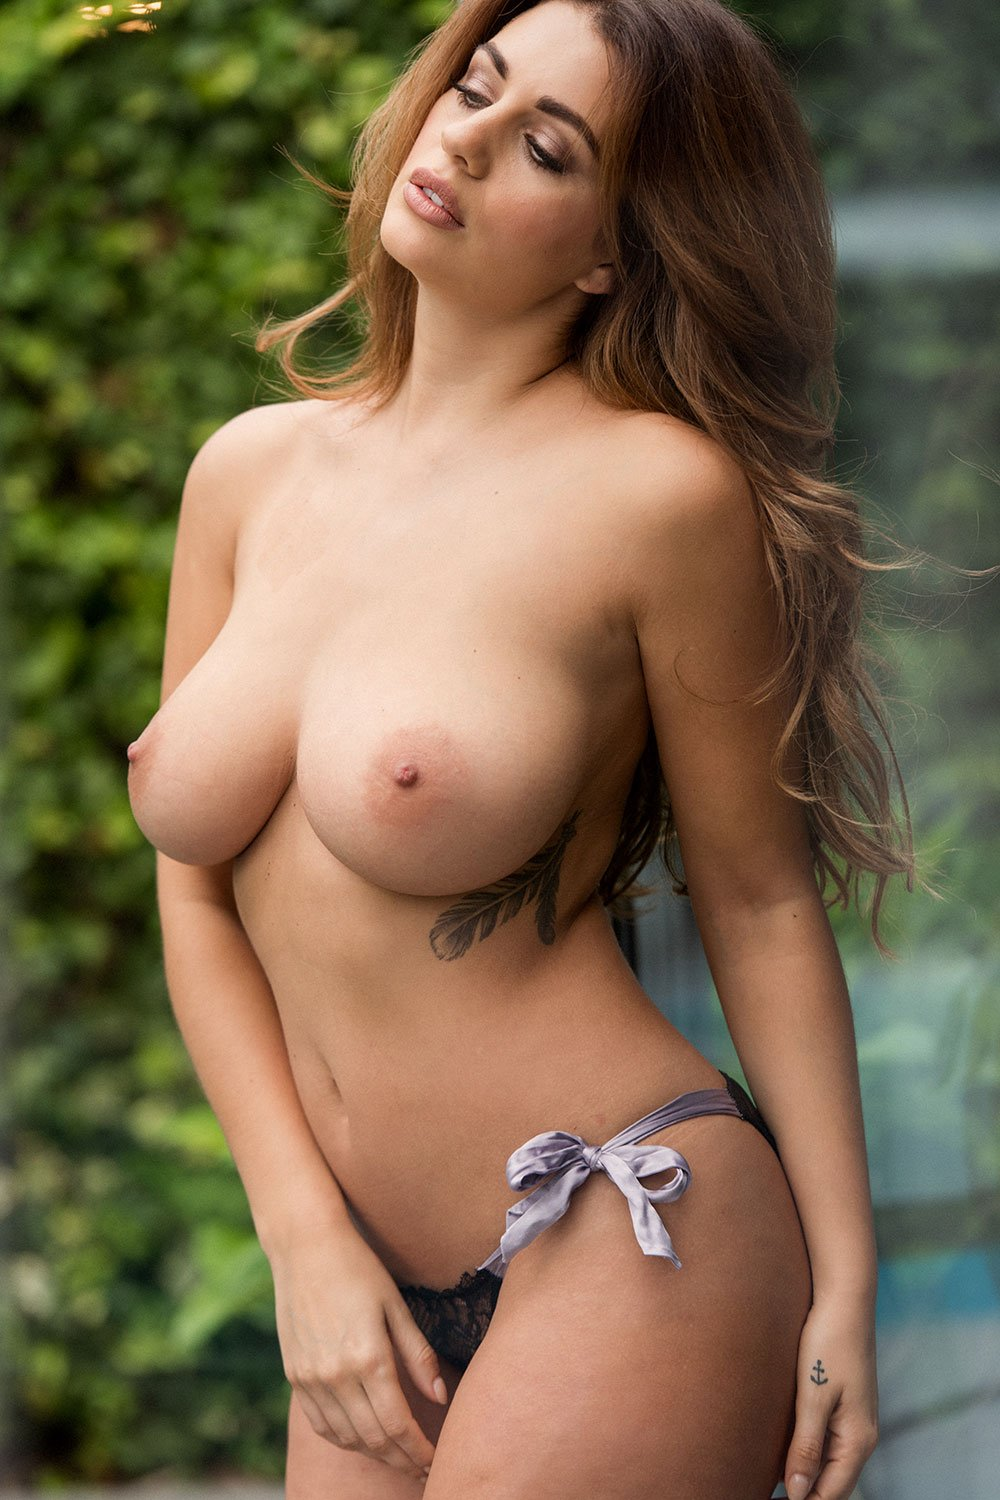 Page3 Classics on Twitter Page3 Best Unseen photos for